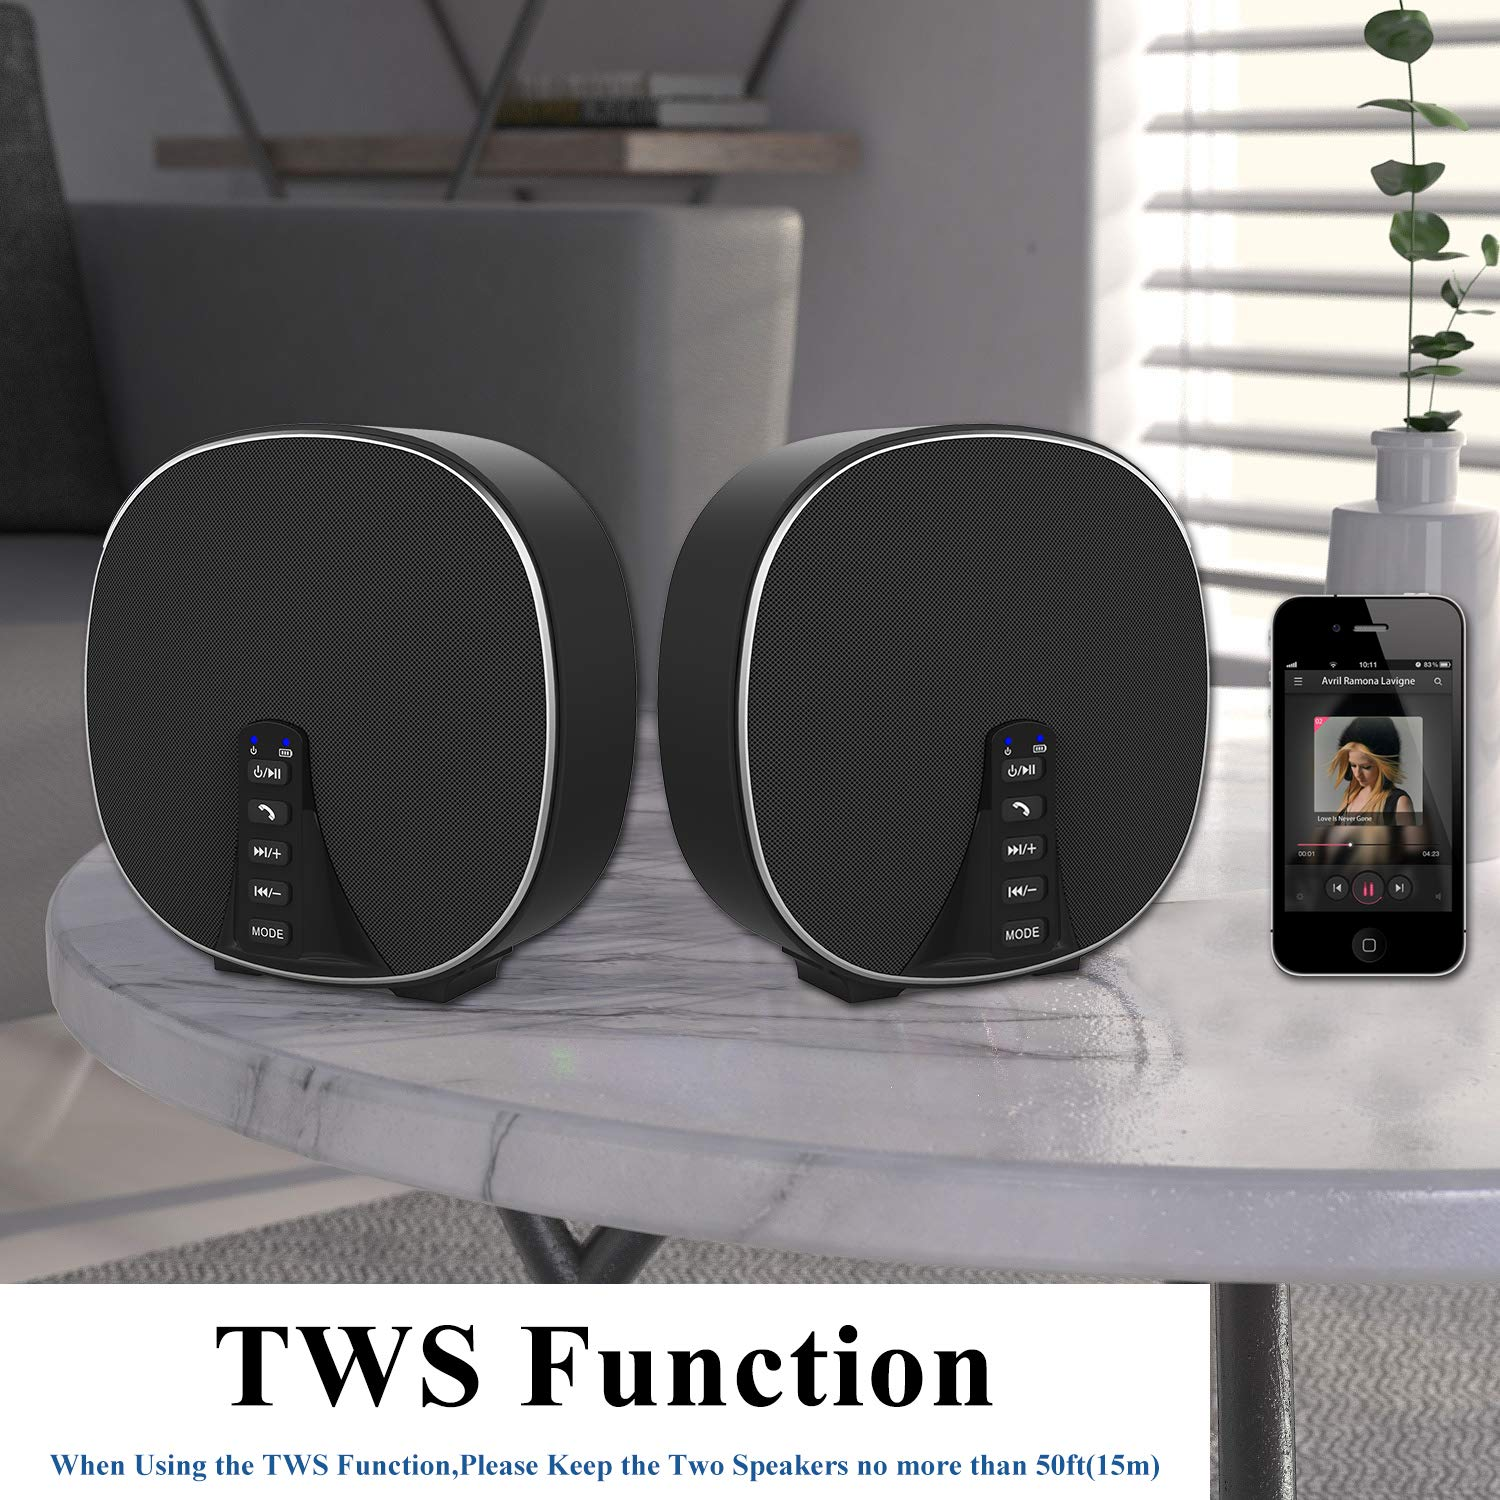 Wireless Portable Bluetooth Speaker 5.0 Build-in Mic, 10W HD Audio, Enhanced Bass, Radio Support, Hands-free Call and TF Card Slot, Stereo Sound for iPhone, Tablet, Android (DY52 Black-Silver)